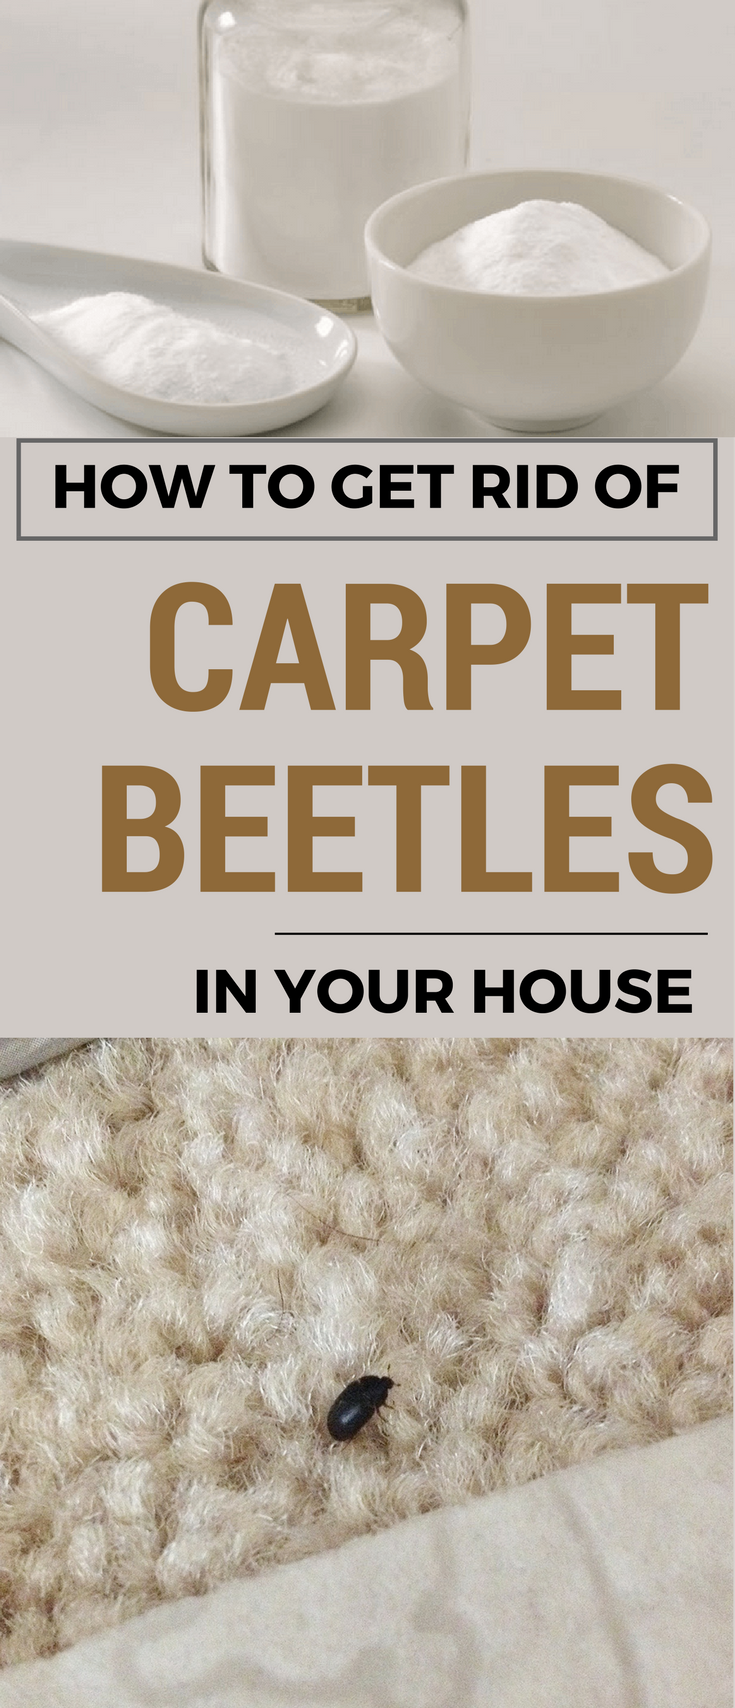 How to Get Rid of Carpet Beetles in Your House ...